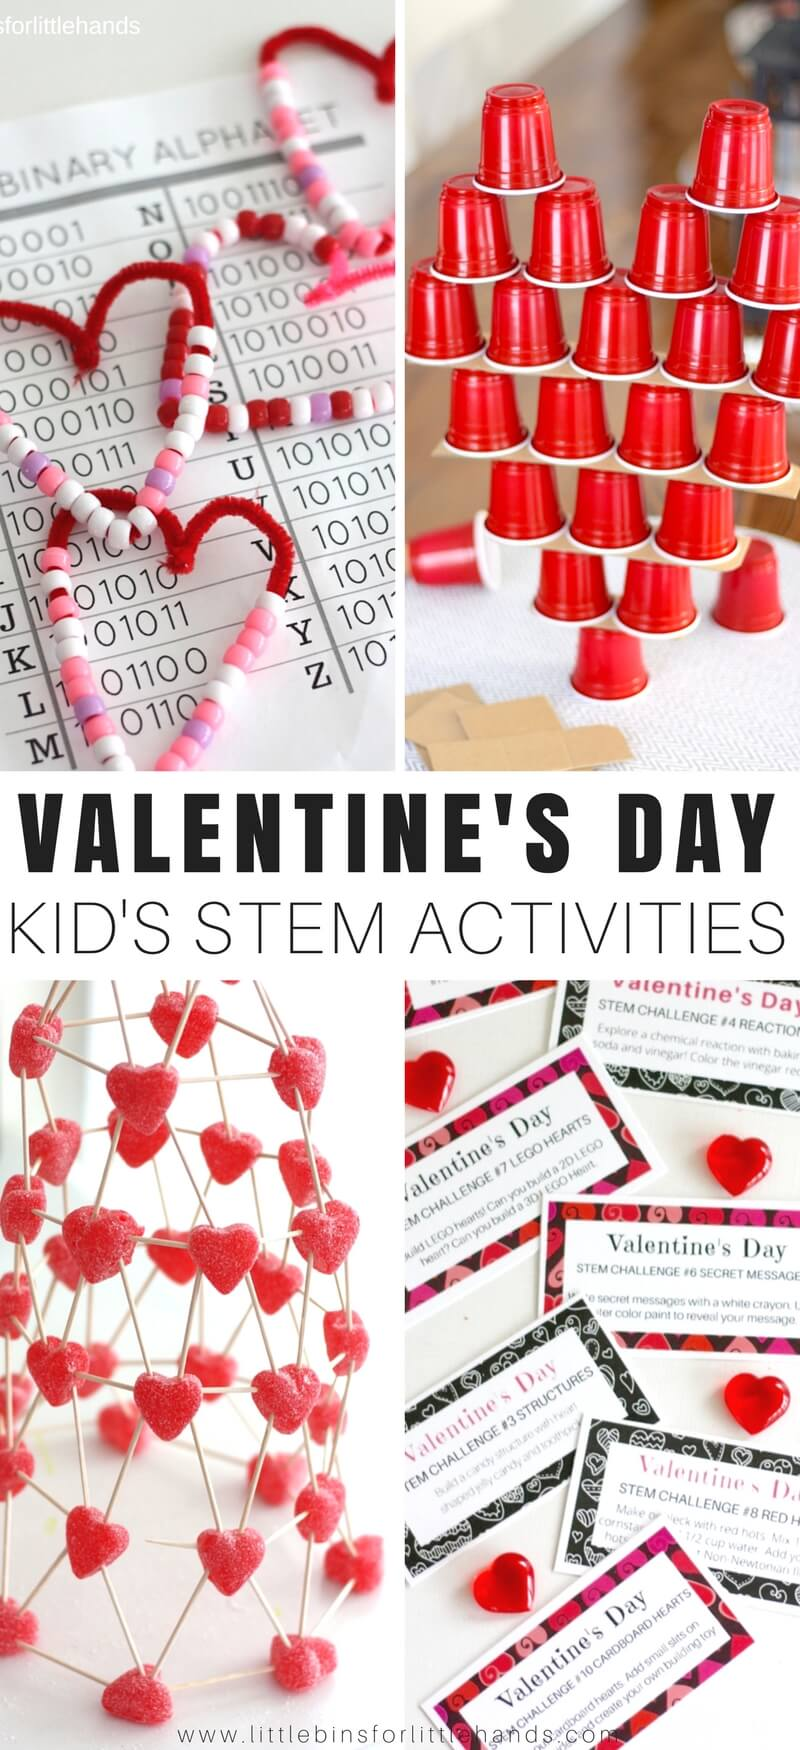 Valentines Day STEM Activities and Challenges for Kids